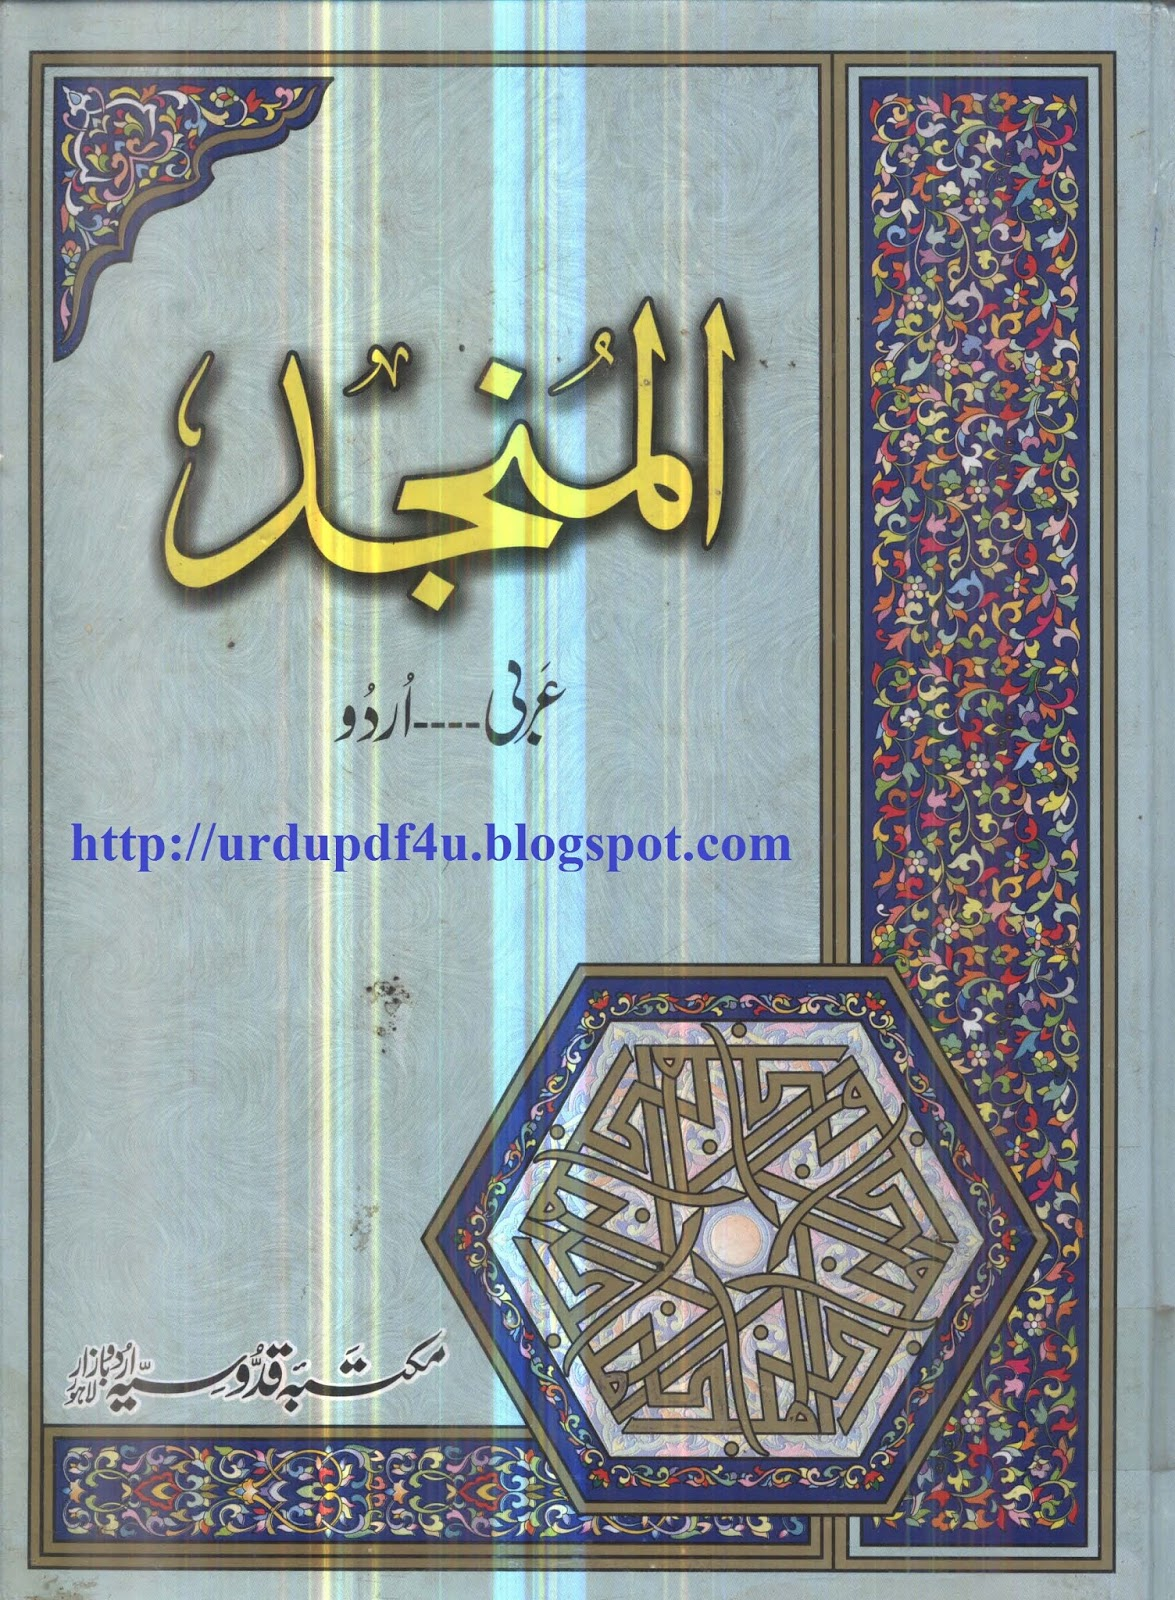 Urdu to urdu dictionary free download pdf